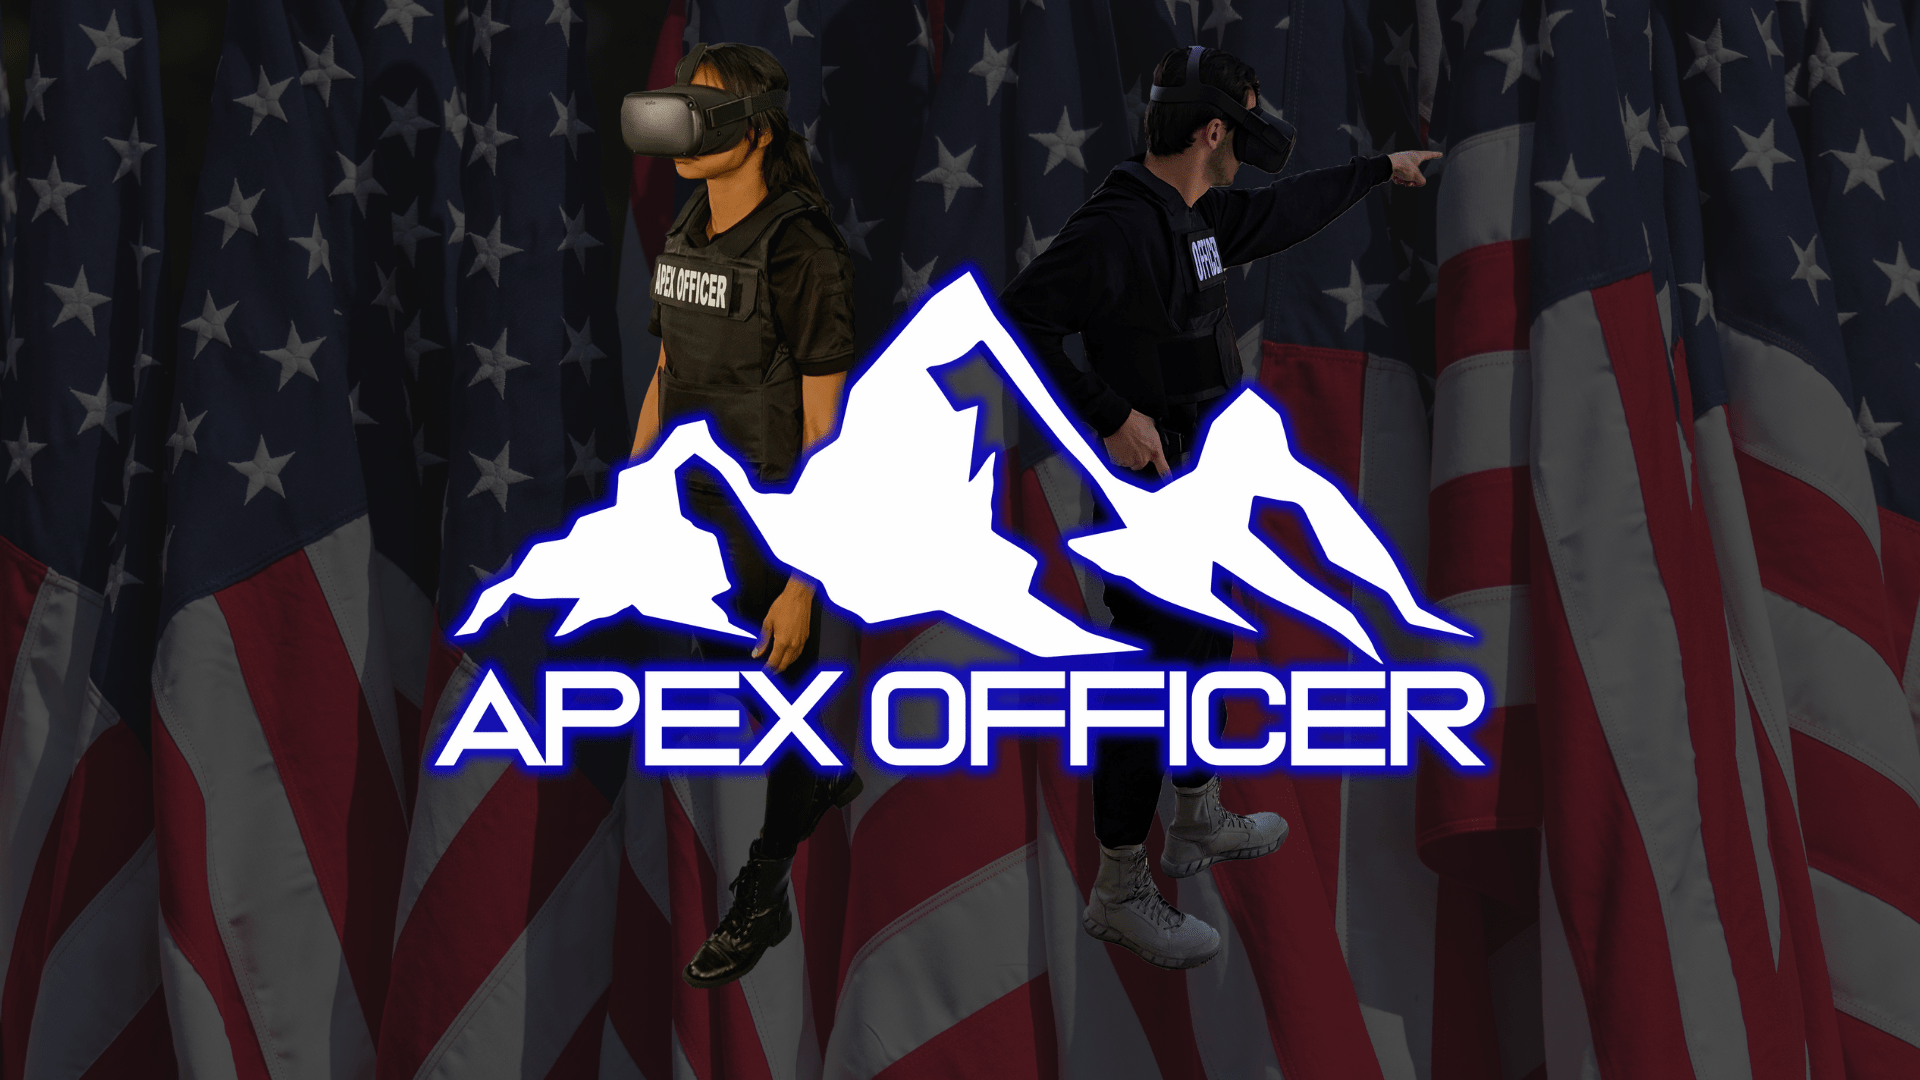 Apex Officer American Flag Wallpaper